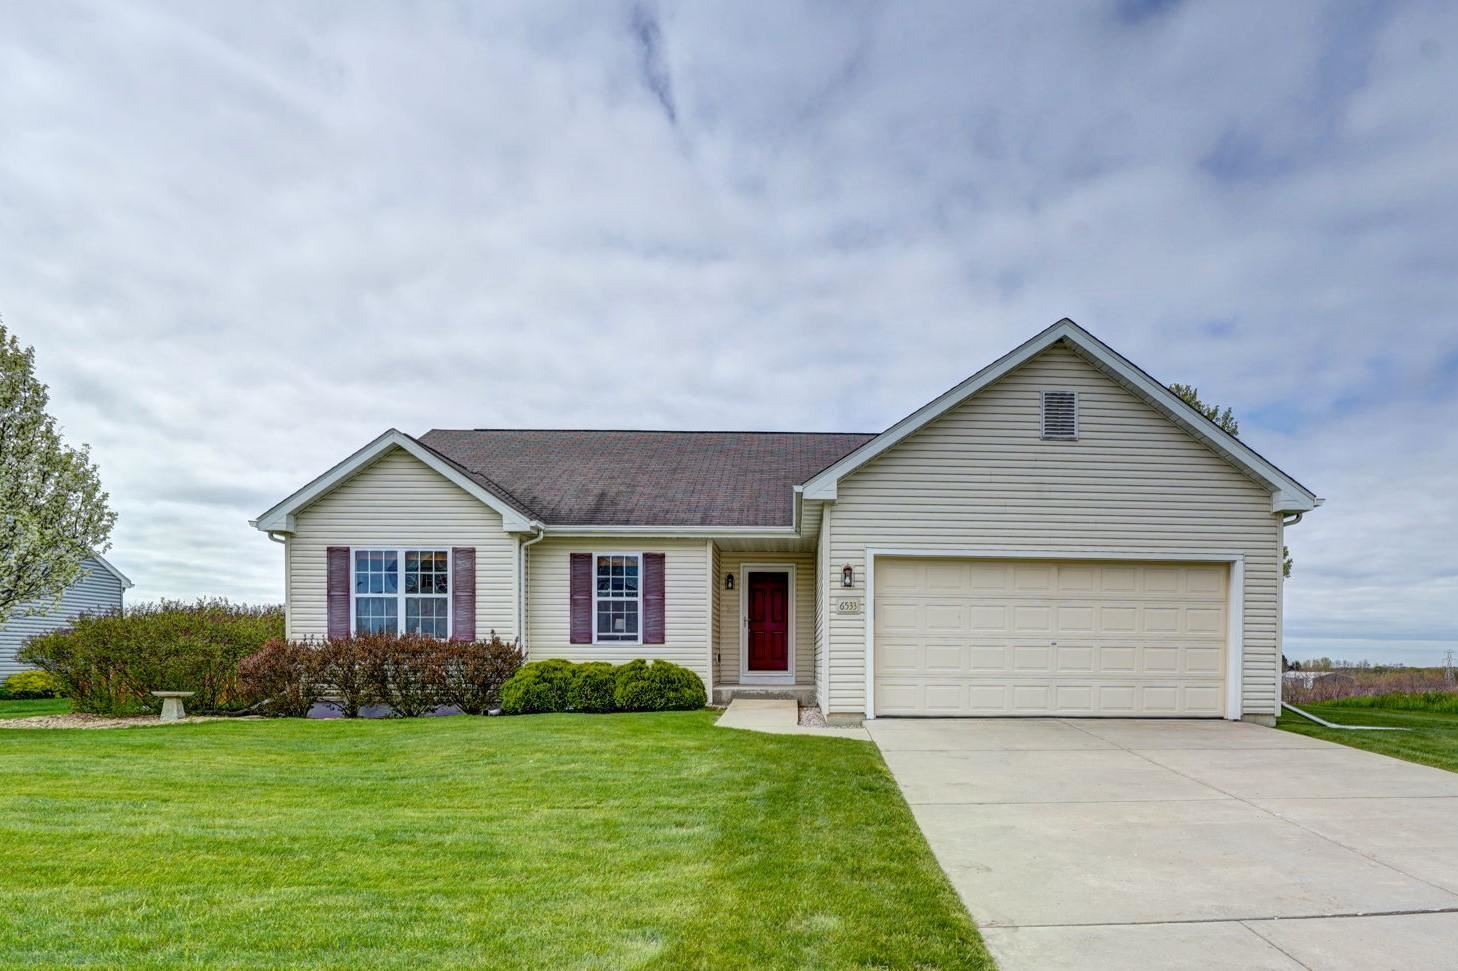 6533 Carnation Dr, Mount Pleasant, WI 53406 - #: 1690206